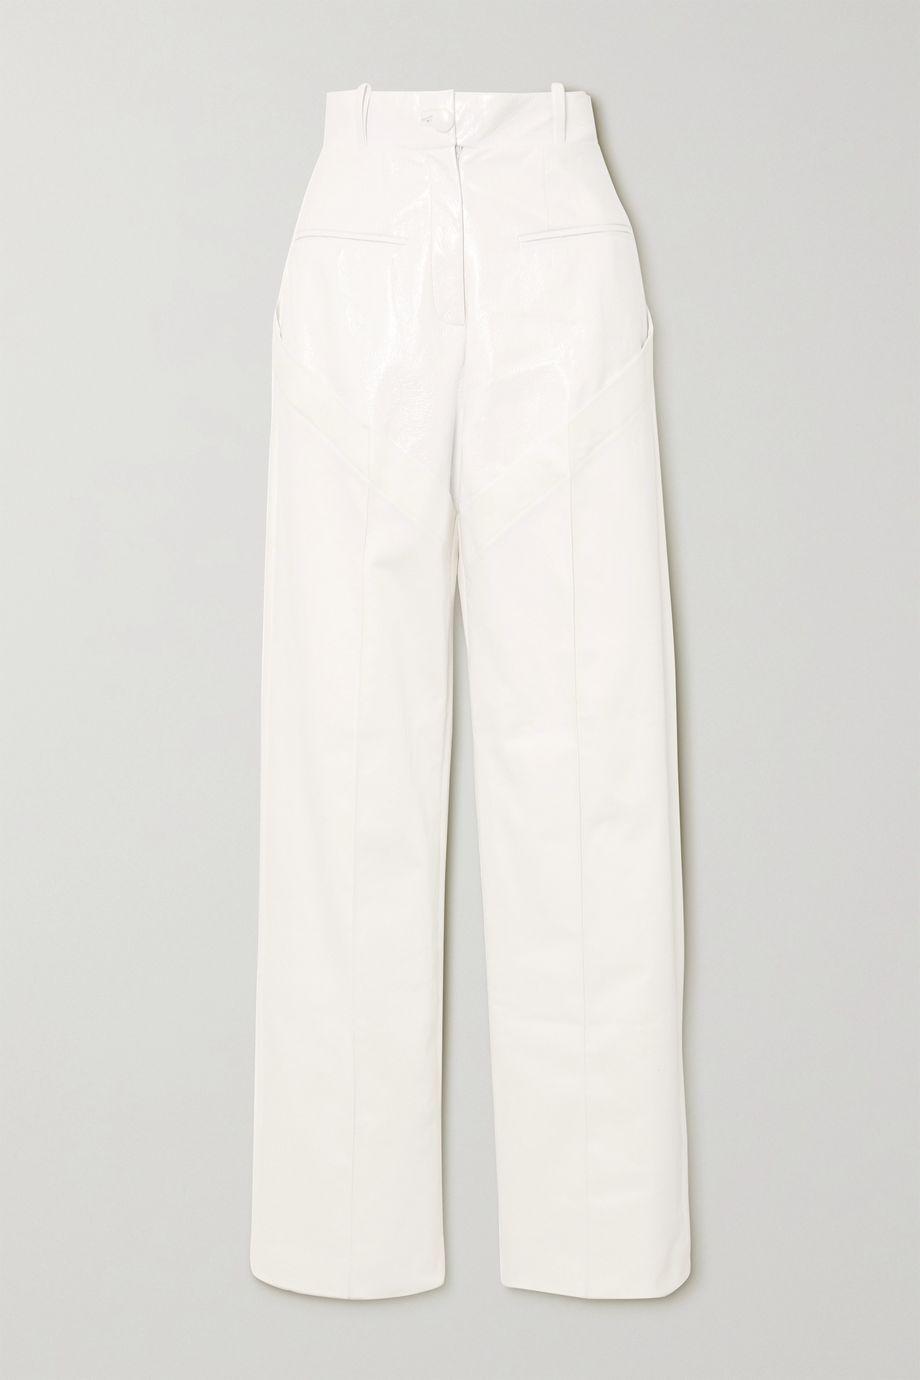 Aleksandre Akhalkatsishvili Paneled crinkled-vinyl and cotton-twill wide-leg pants